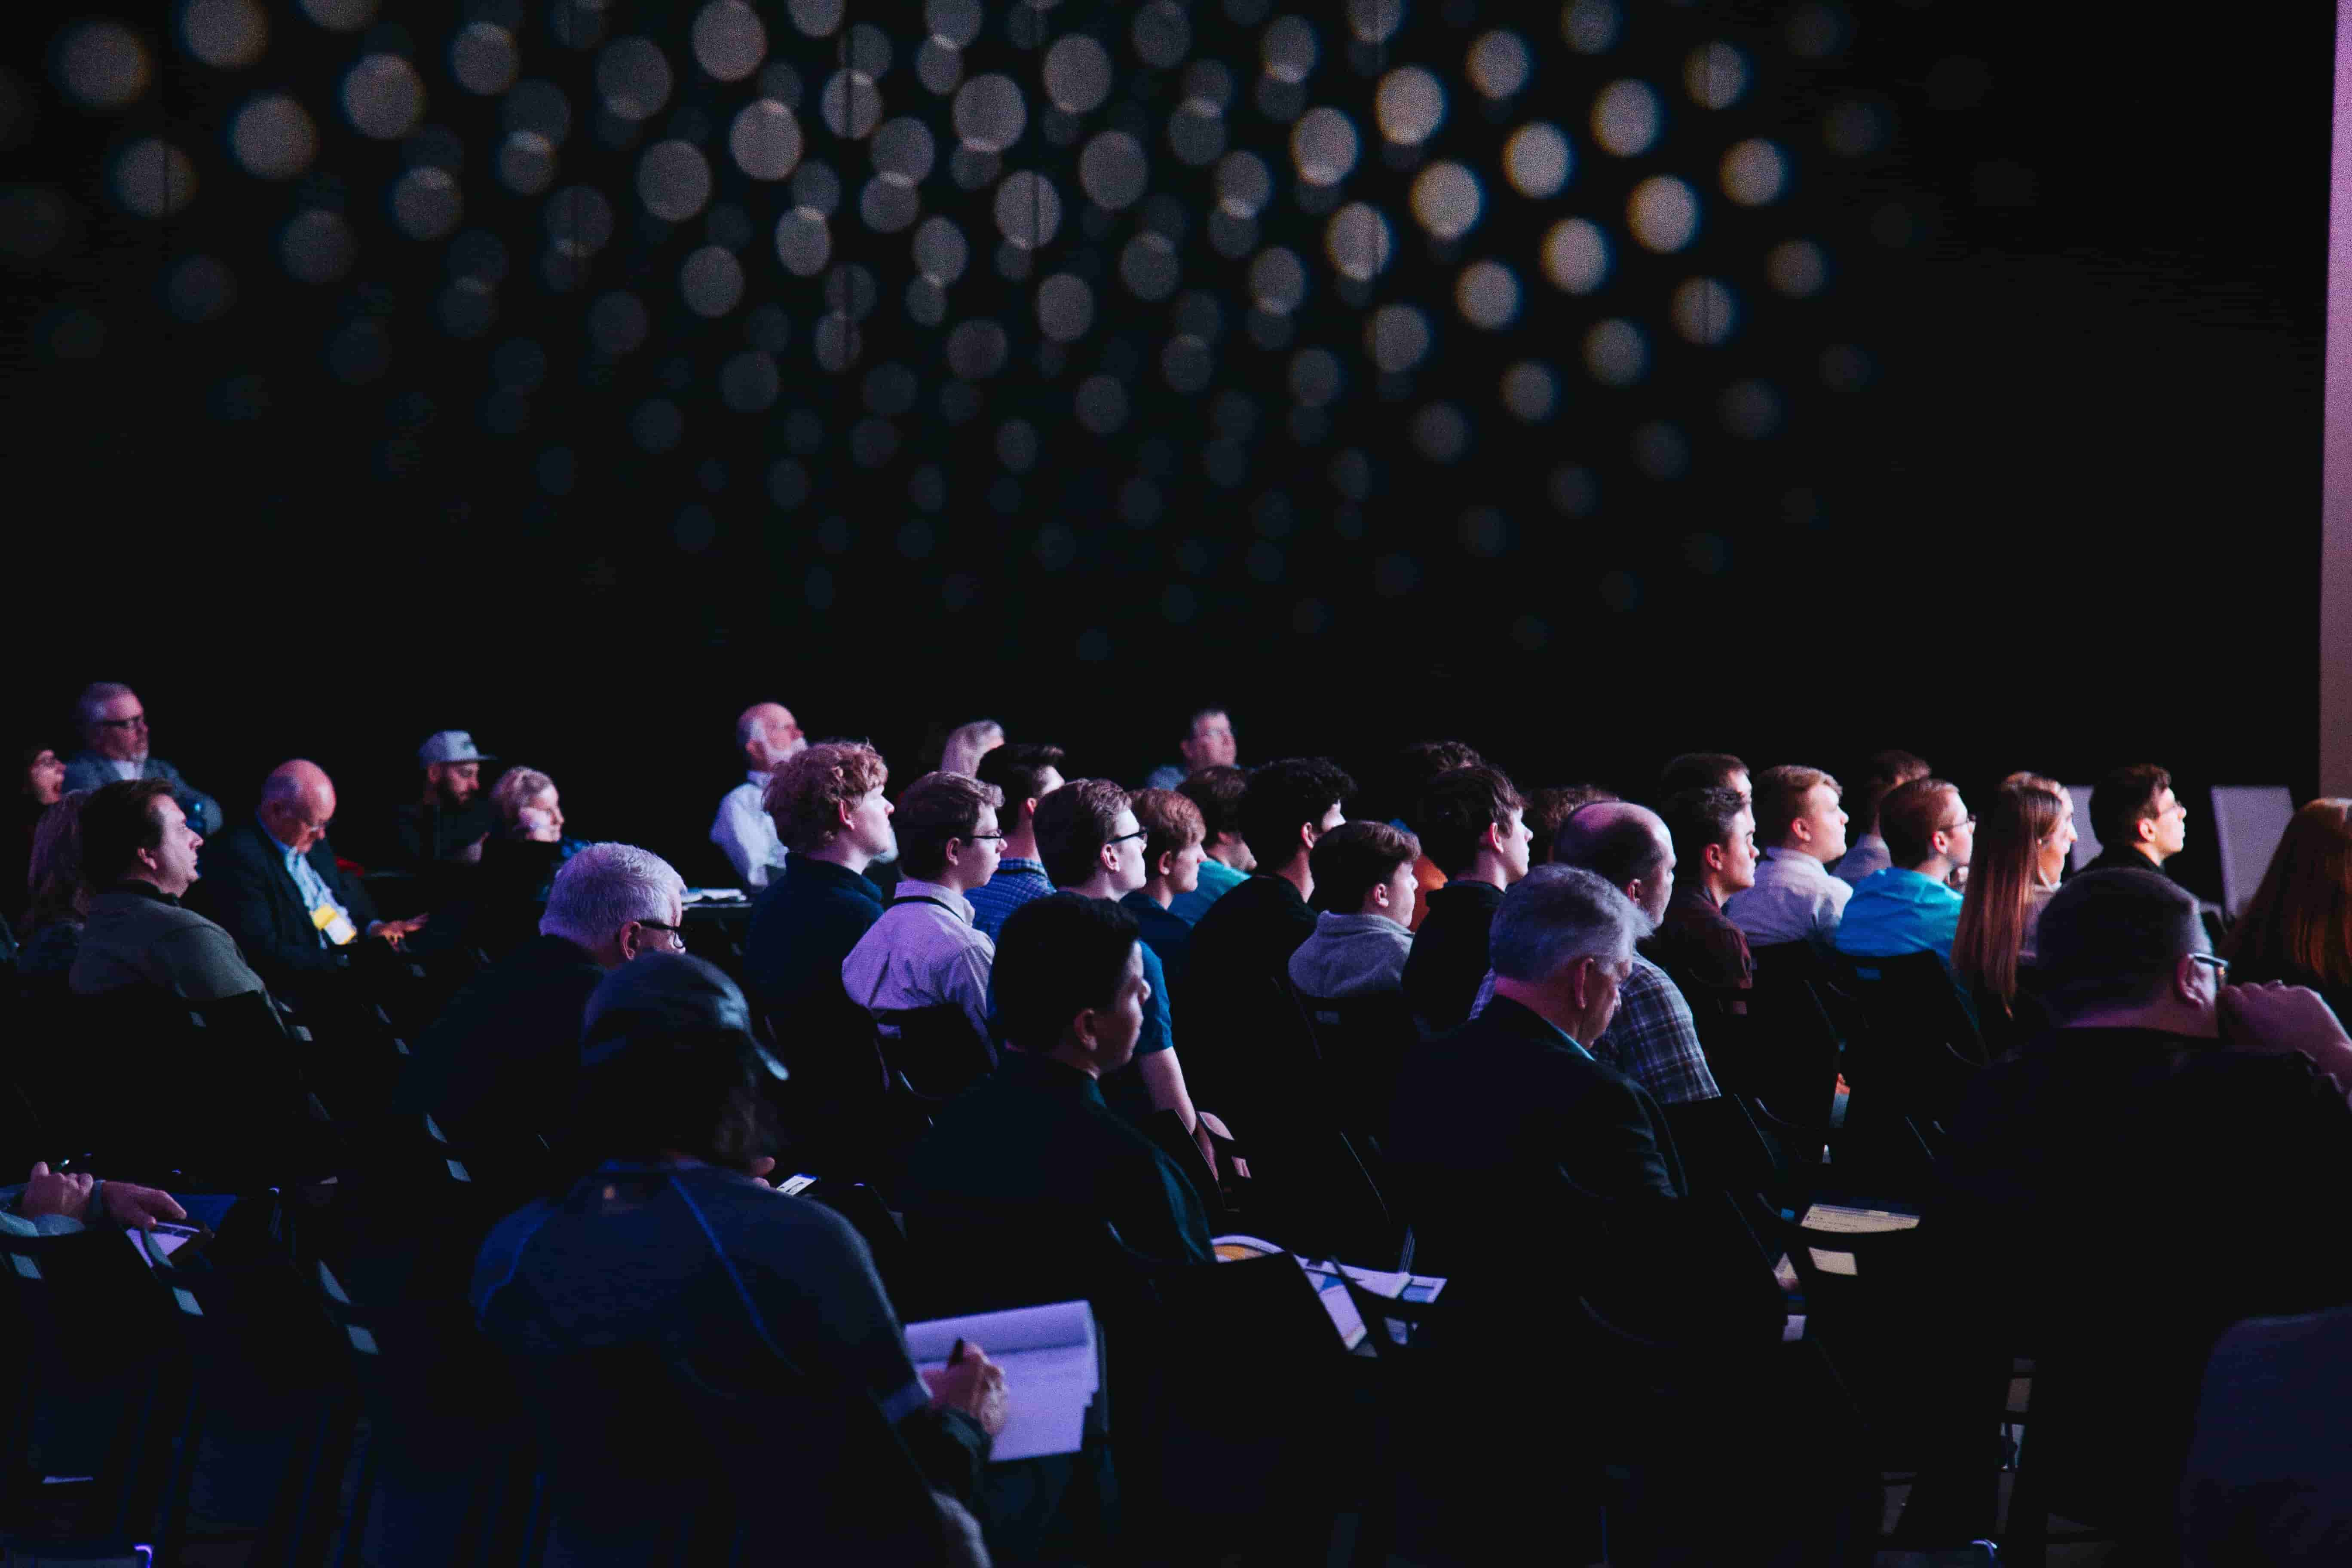 Transcribed conferences use artificial intelligence to produce audio to text transcripts